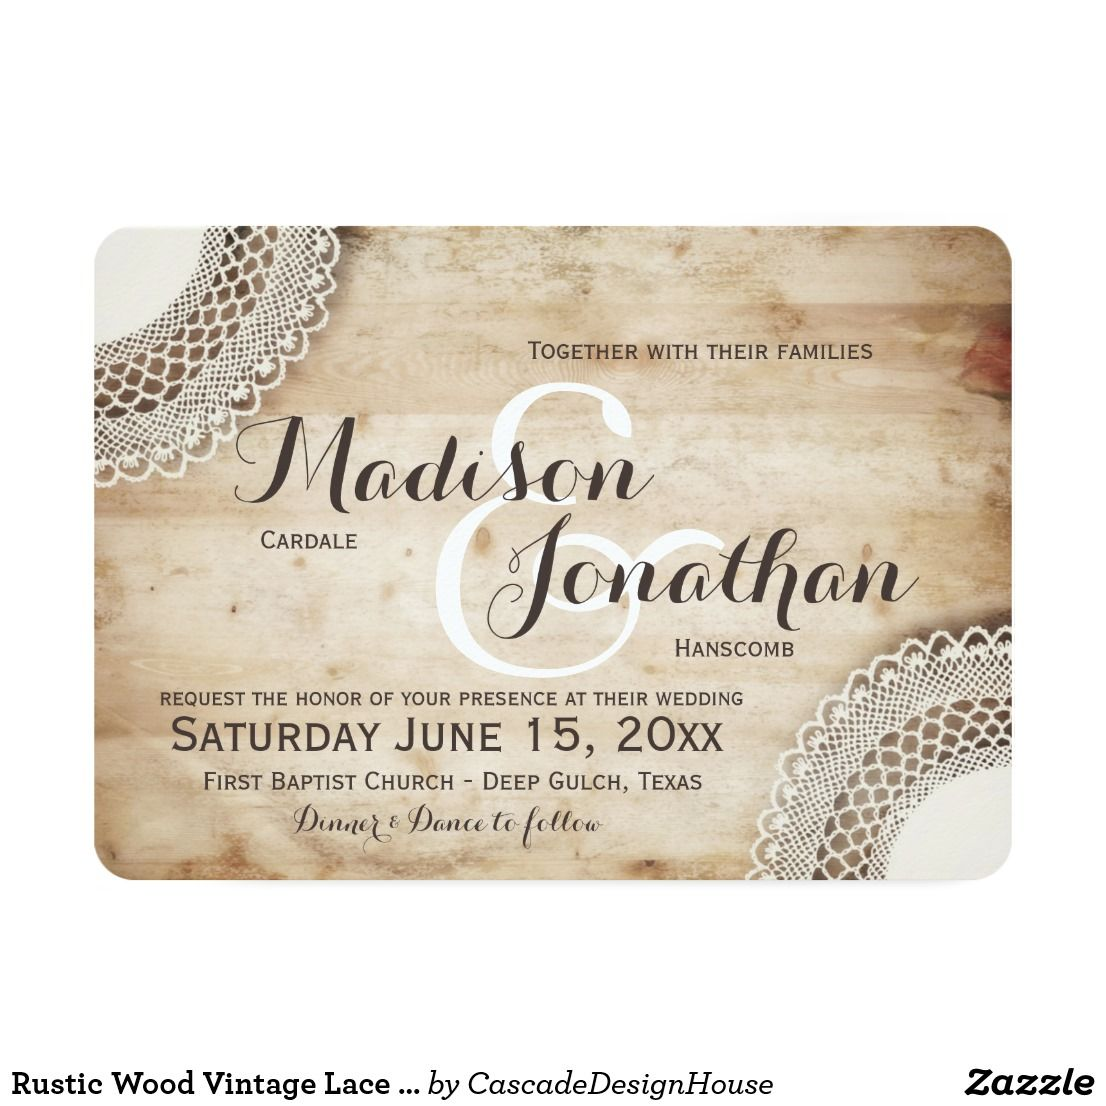 Rustic Wood Vintage Lace Wedding Invitations with a boho shabby chic ...